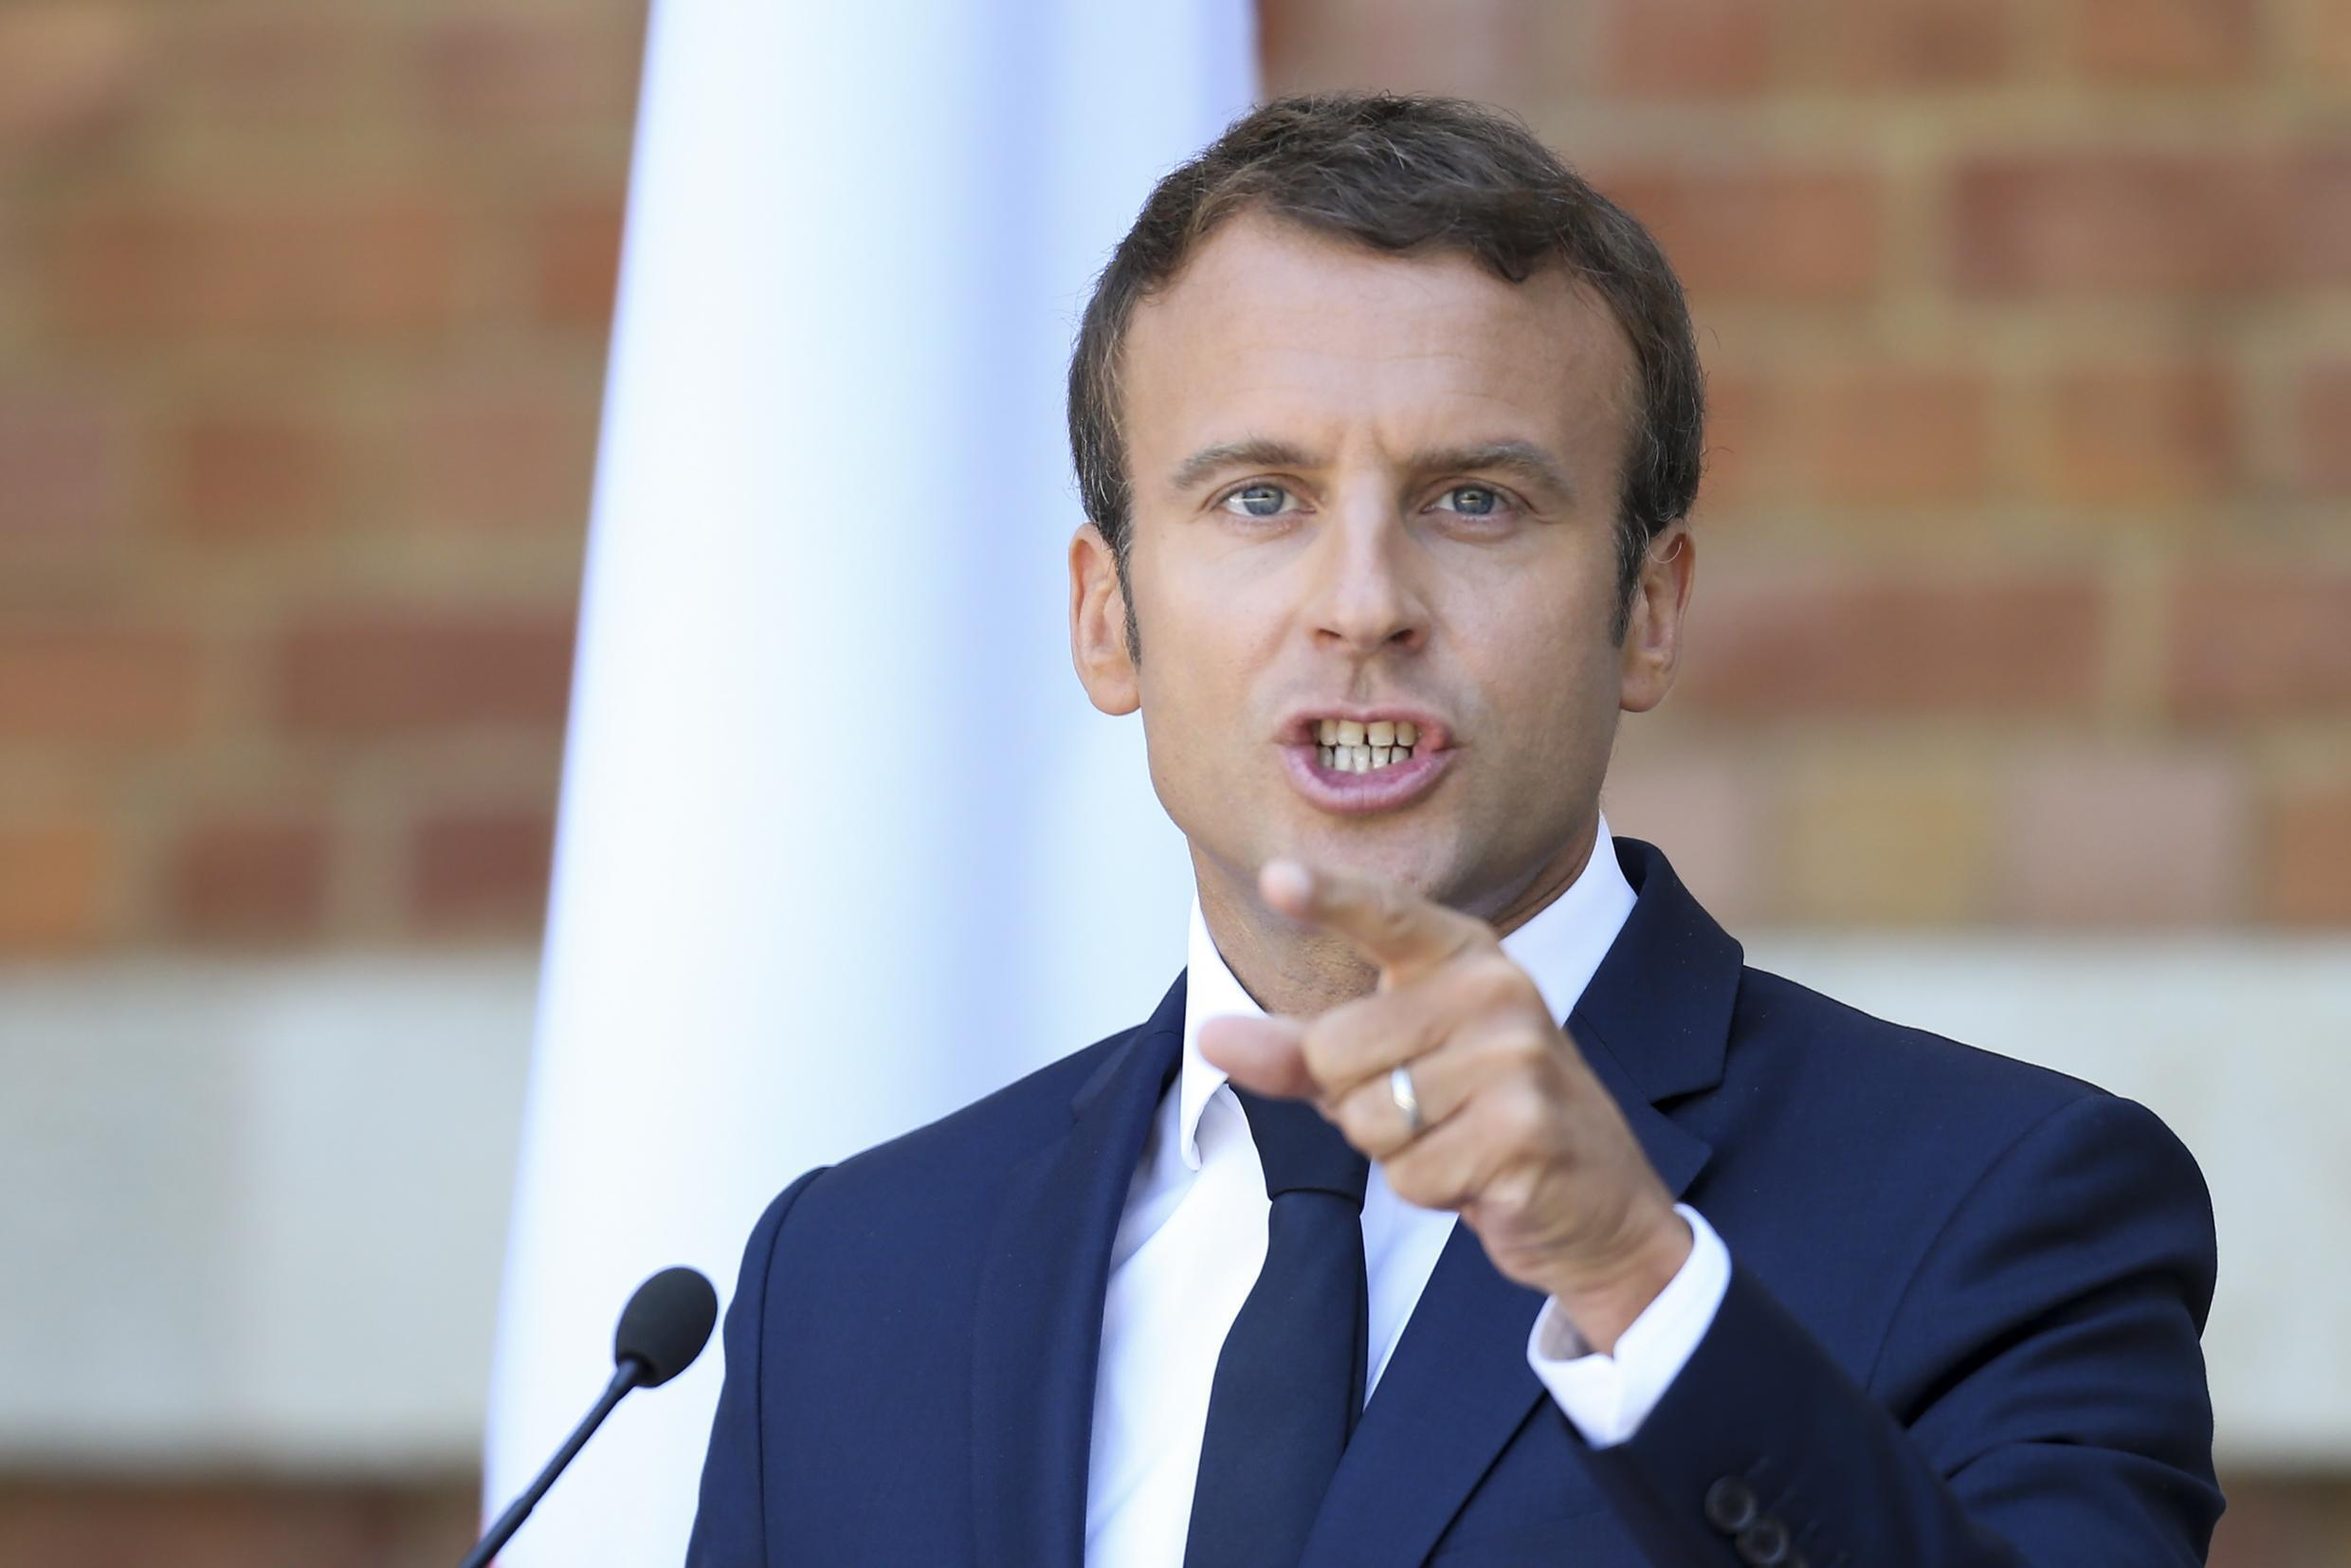 French President Emmanuel Macron attends a joint news conference with Bulgarian President Rumen Radev (not pictured) in Euxinograd residence, near Varna, Bulgaria, August 25, 2017.